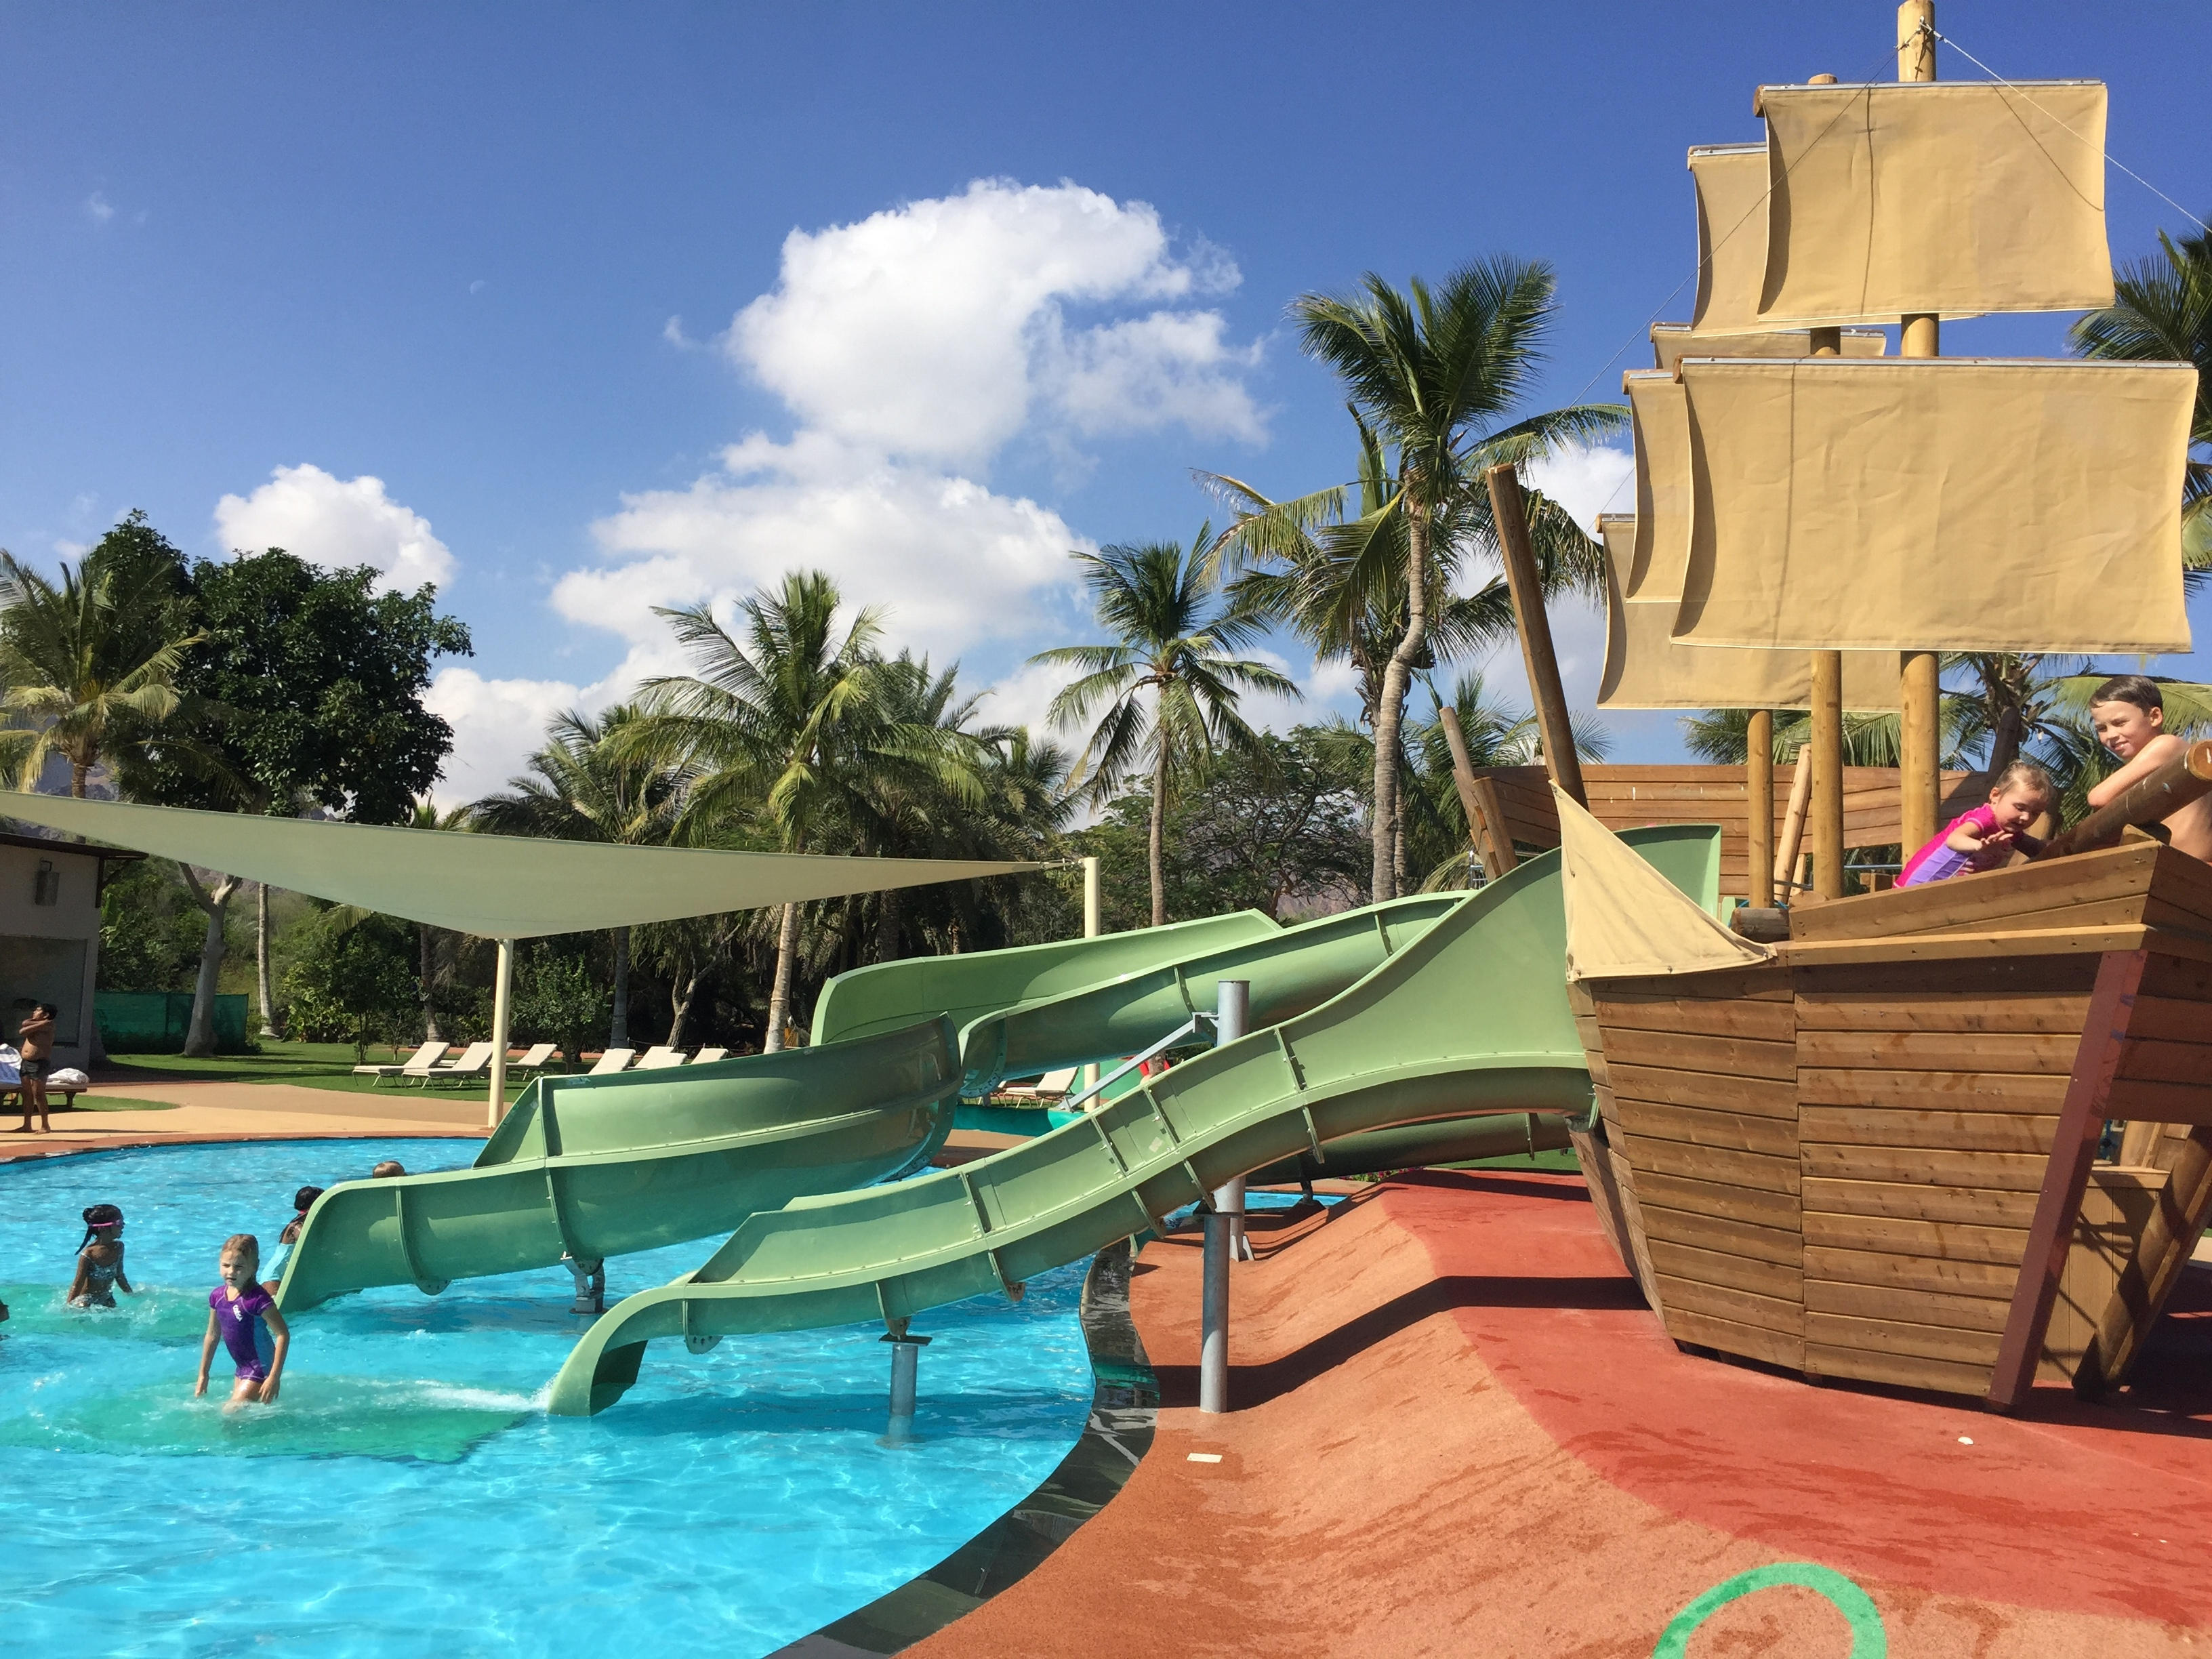 Ritz Kids pool area - Al Bustan Palace Muscat